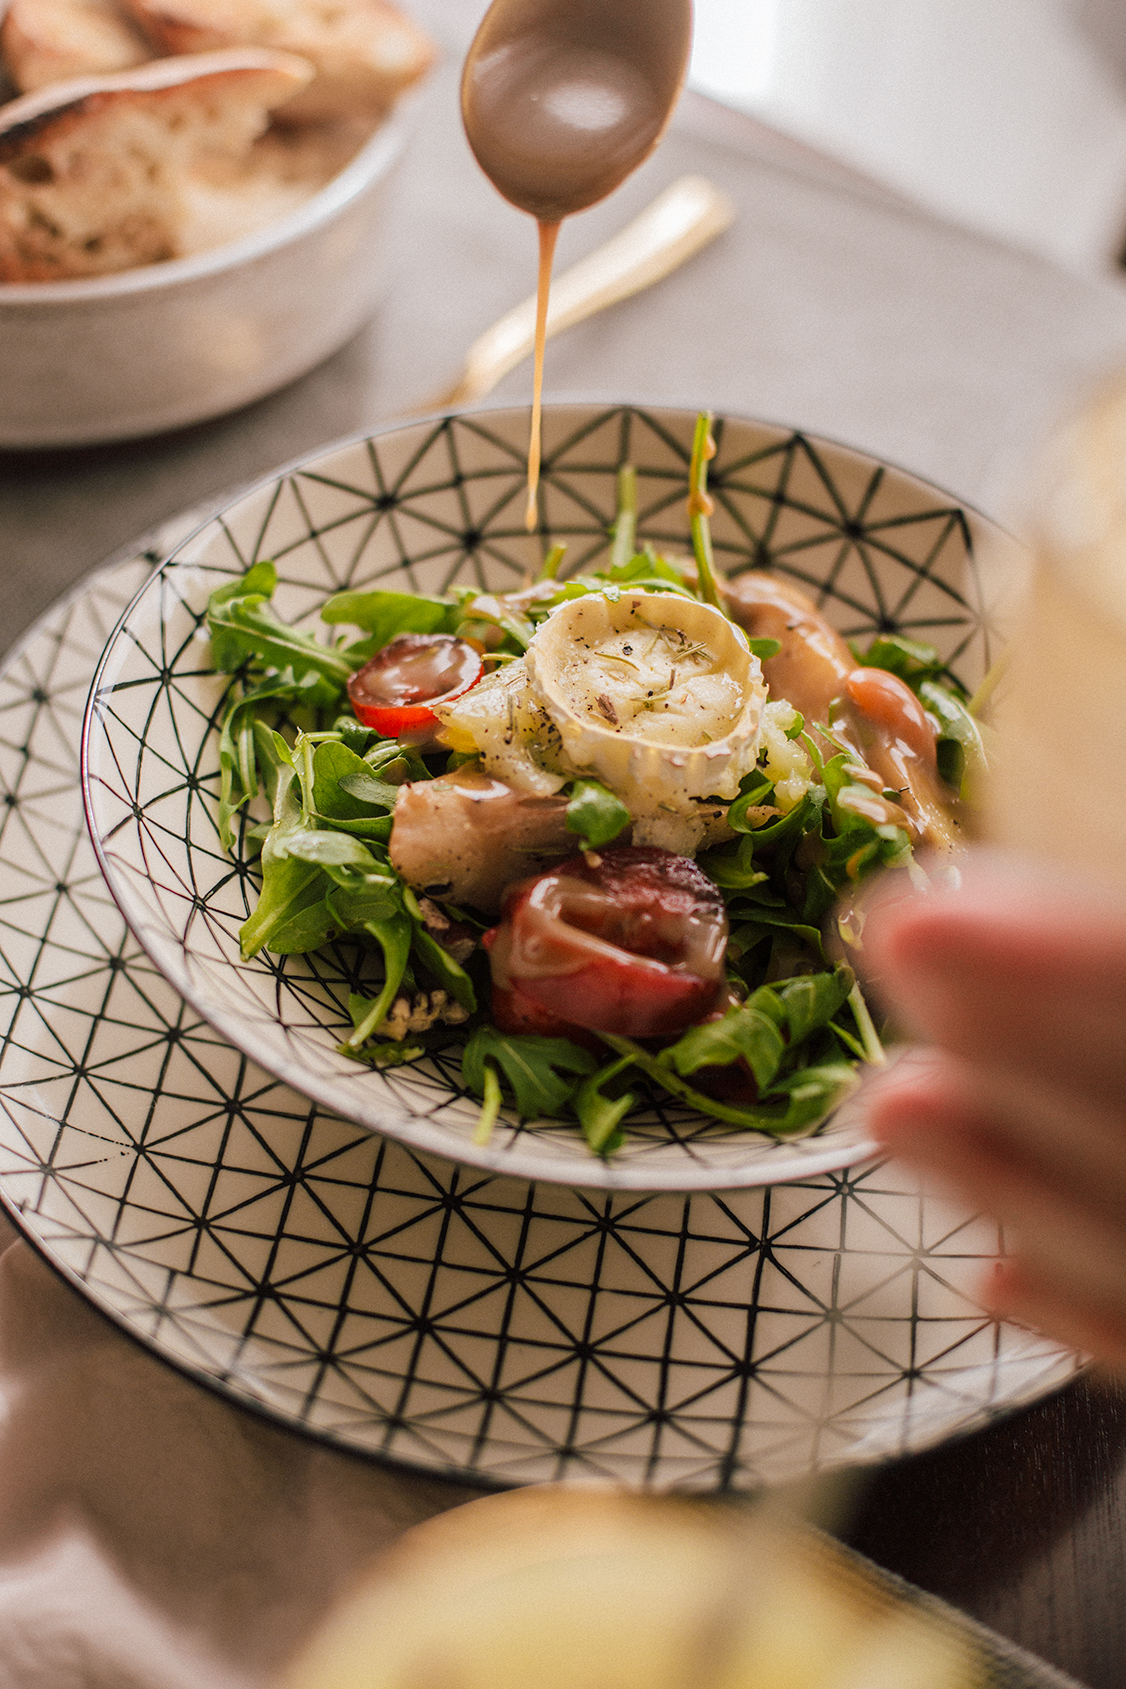 Goat Cheese Salad with Pears, Pecans and Maple-Balsamic Dressing